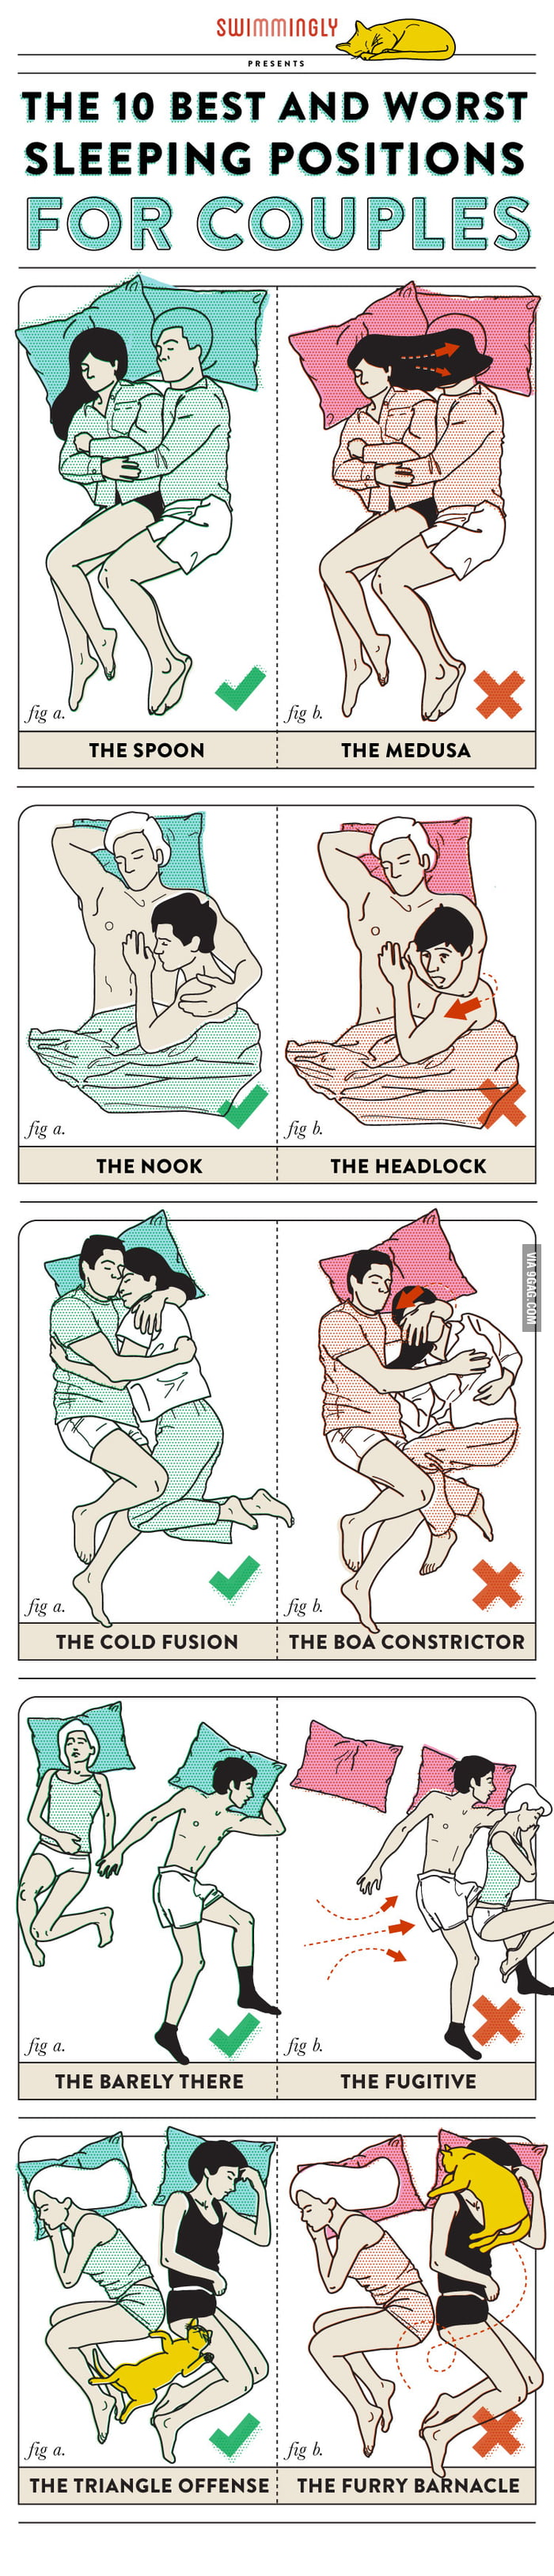 Sleep position.